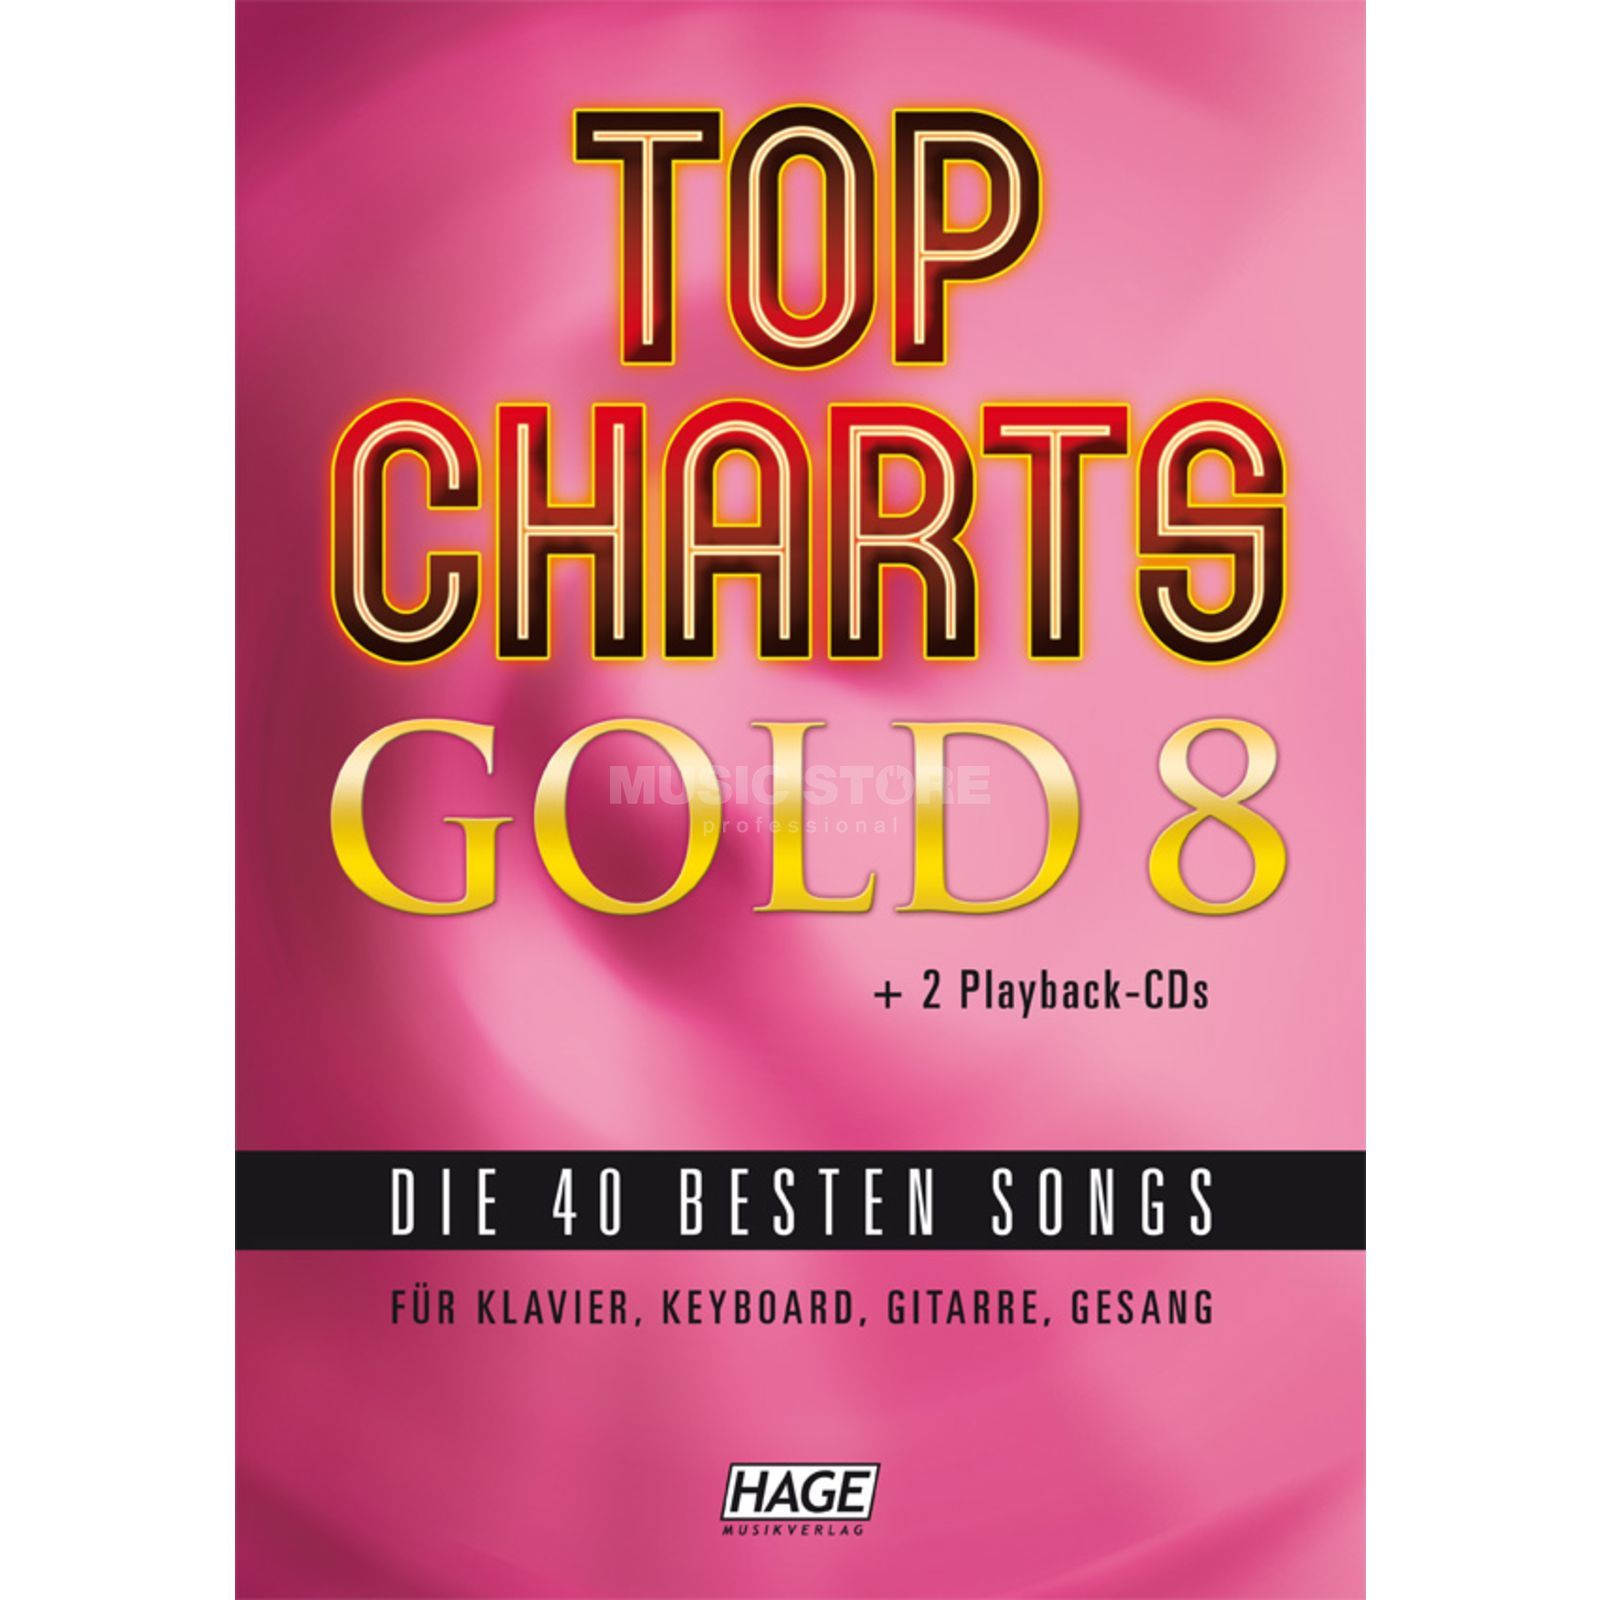 Hage Musikverlag Top Charts Gold 8 Product Image